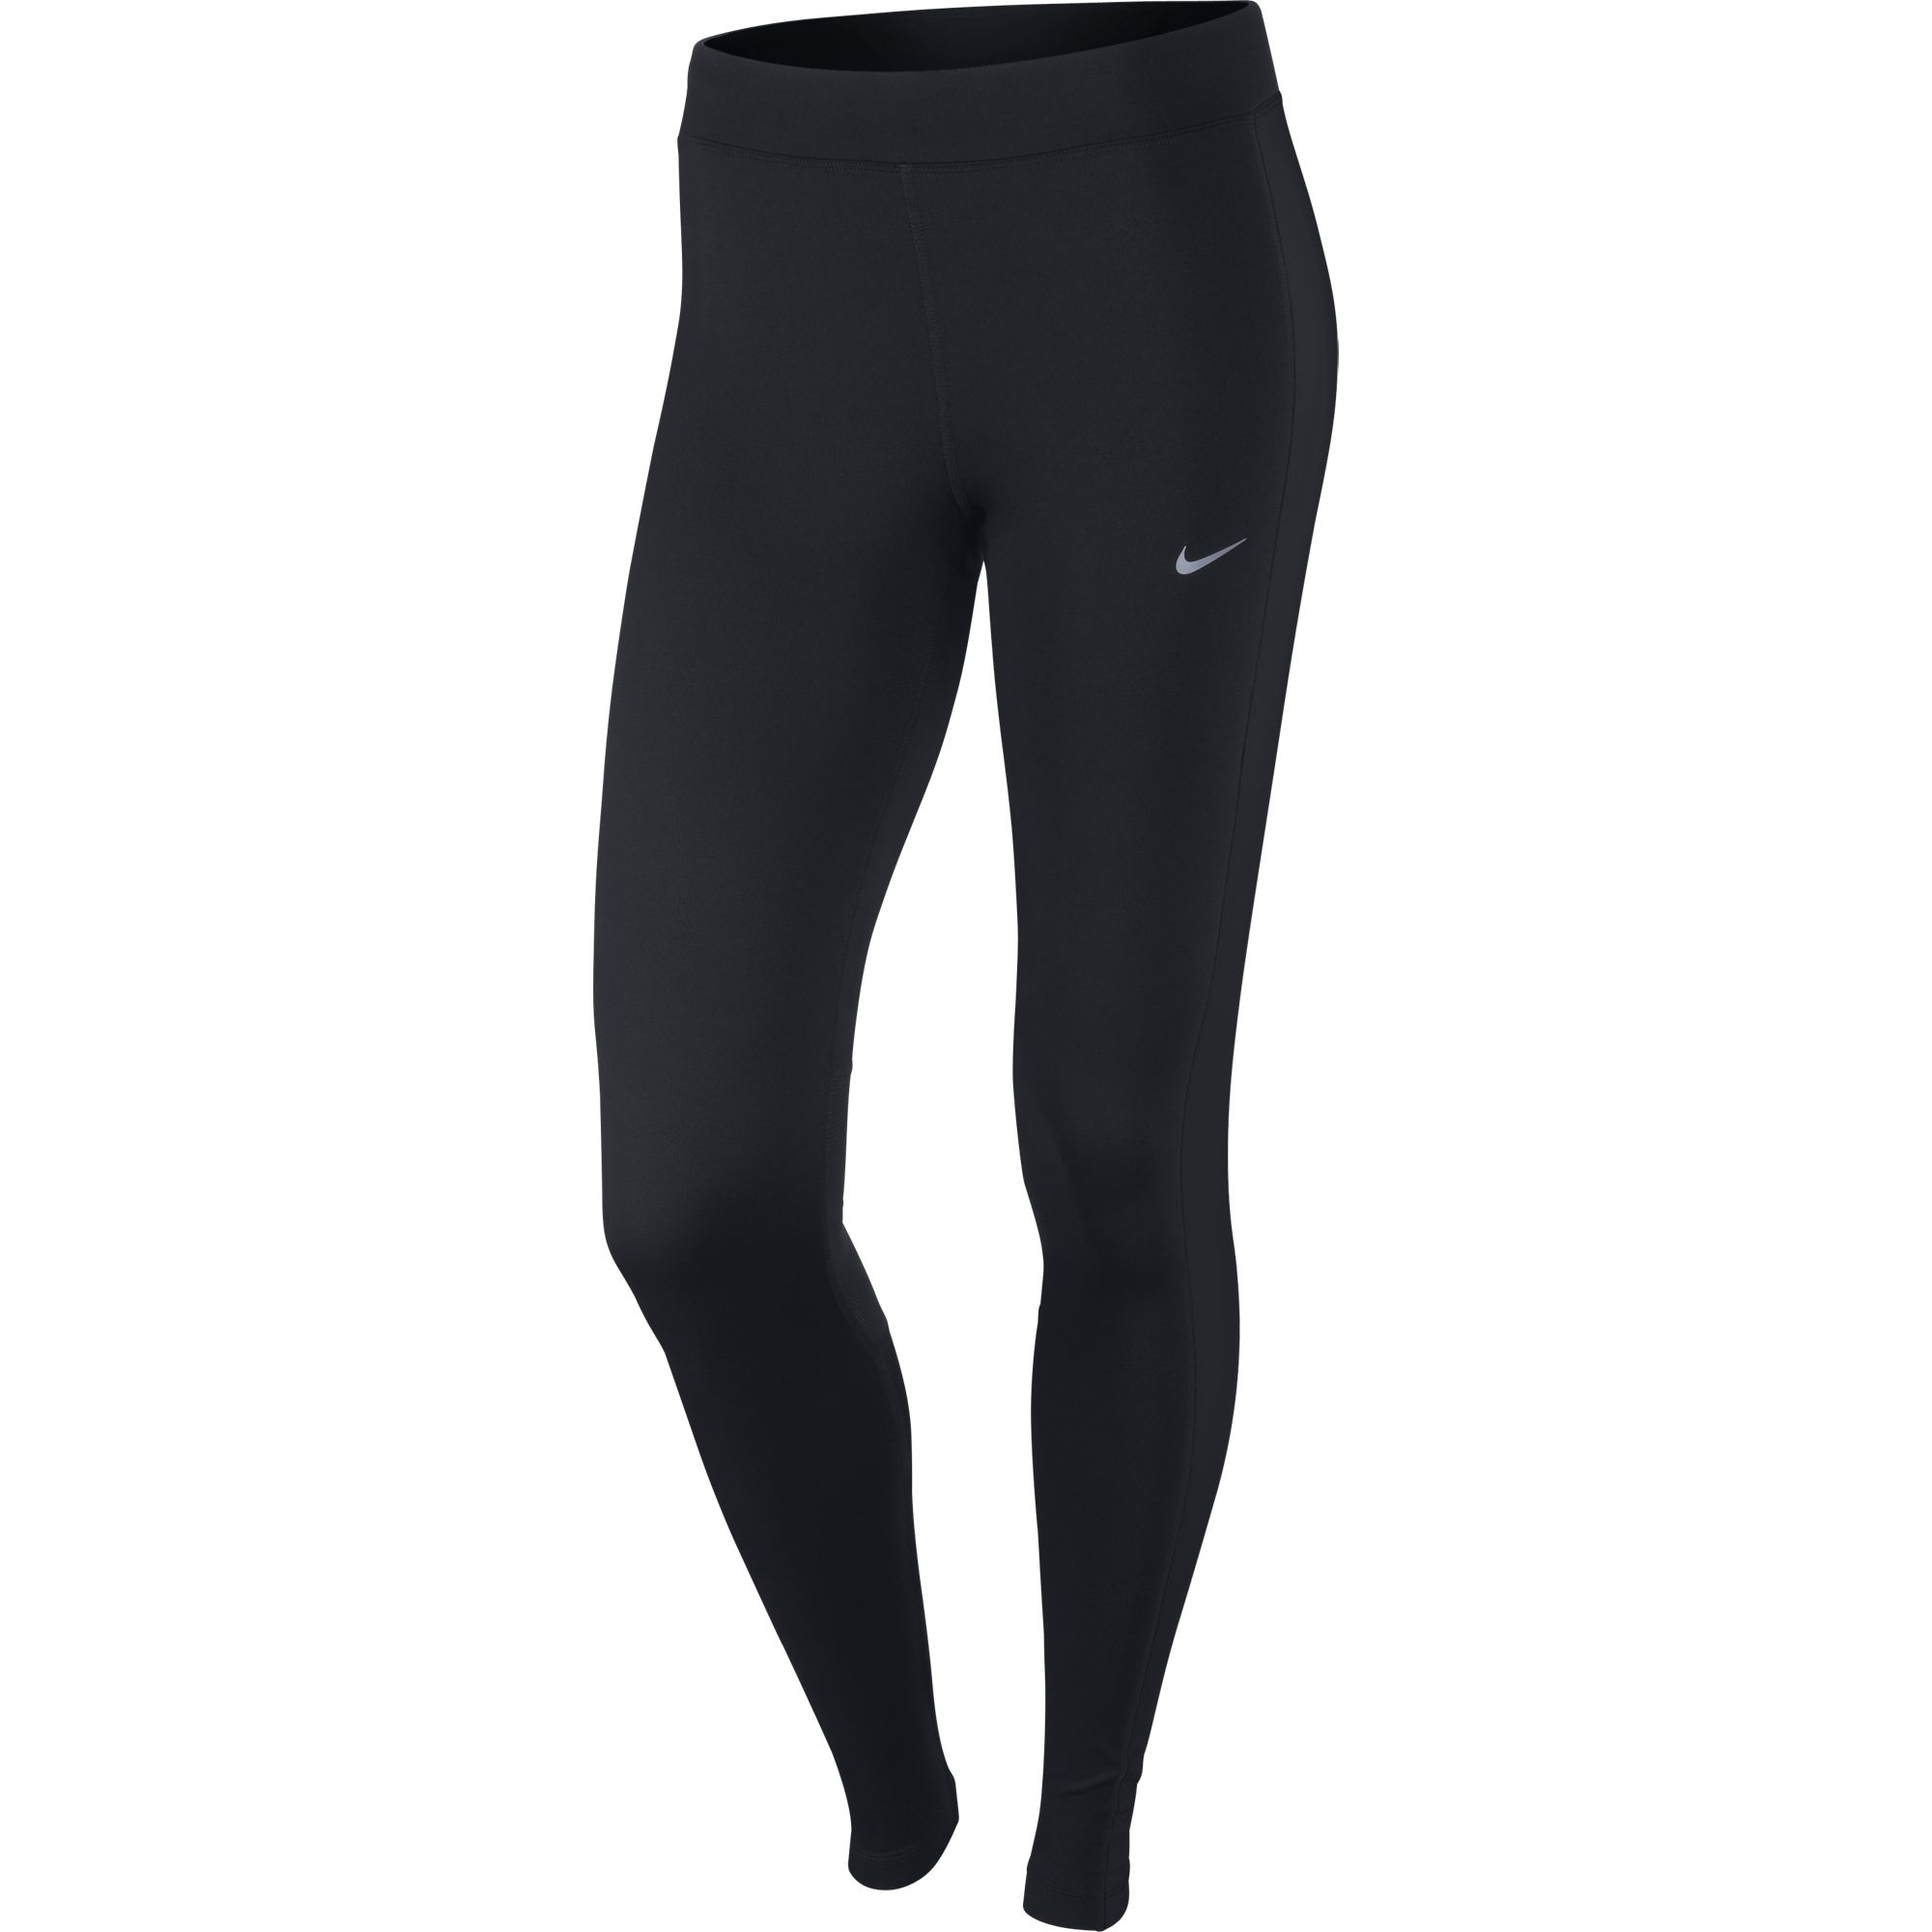 a08ee1352881e1 Home / Clothing / Tights / Nike Women's Power Essential Running Tight.  645606-010-phsfh001-2000